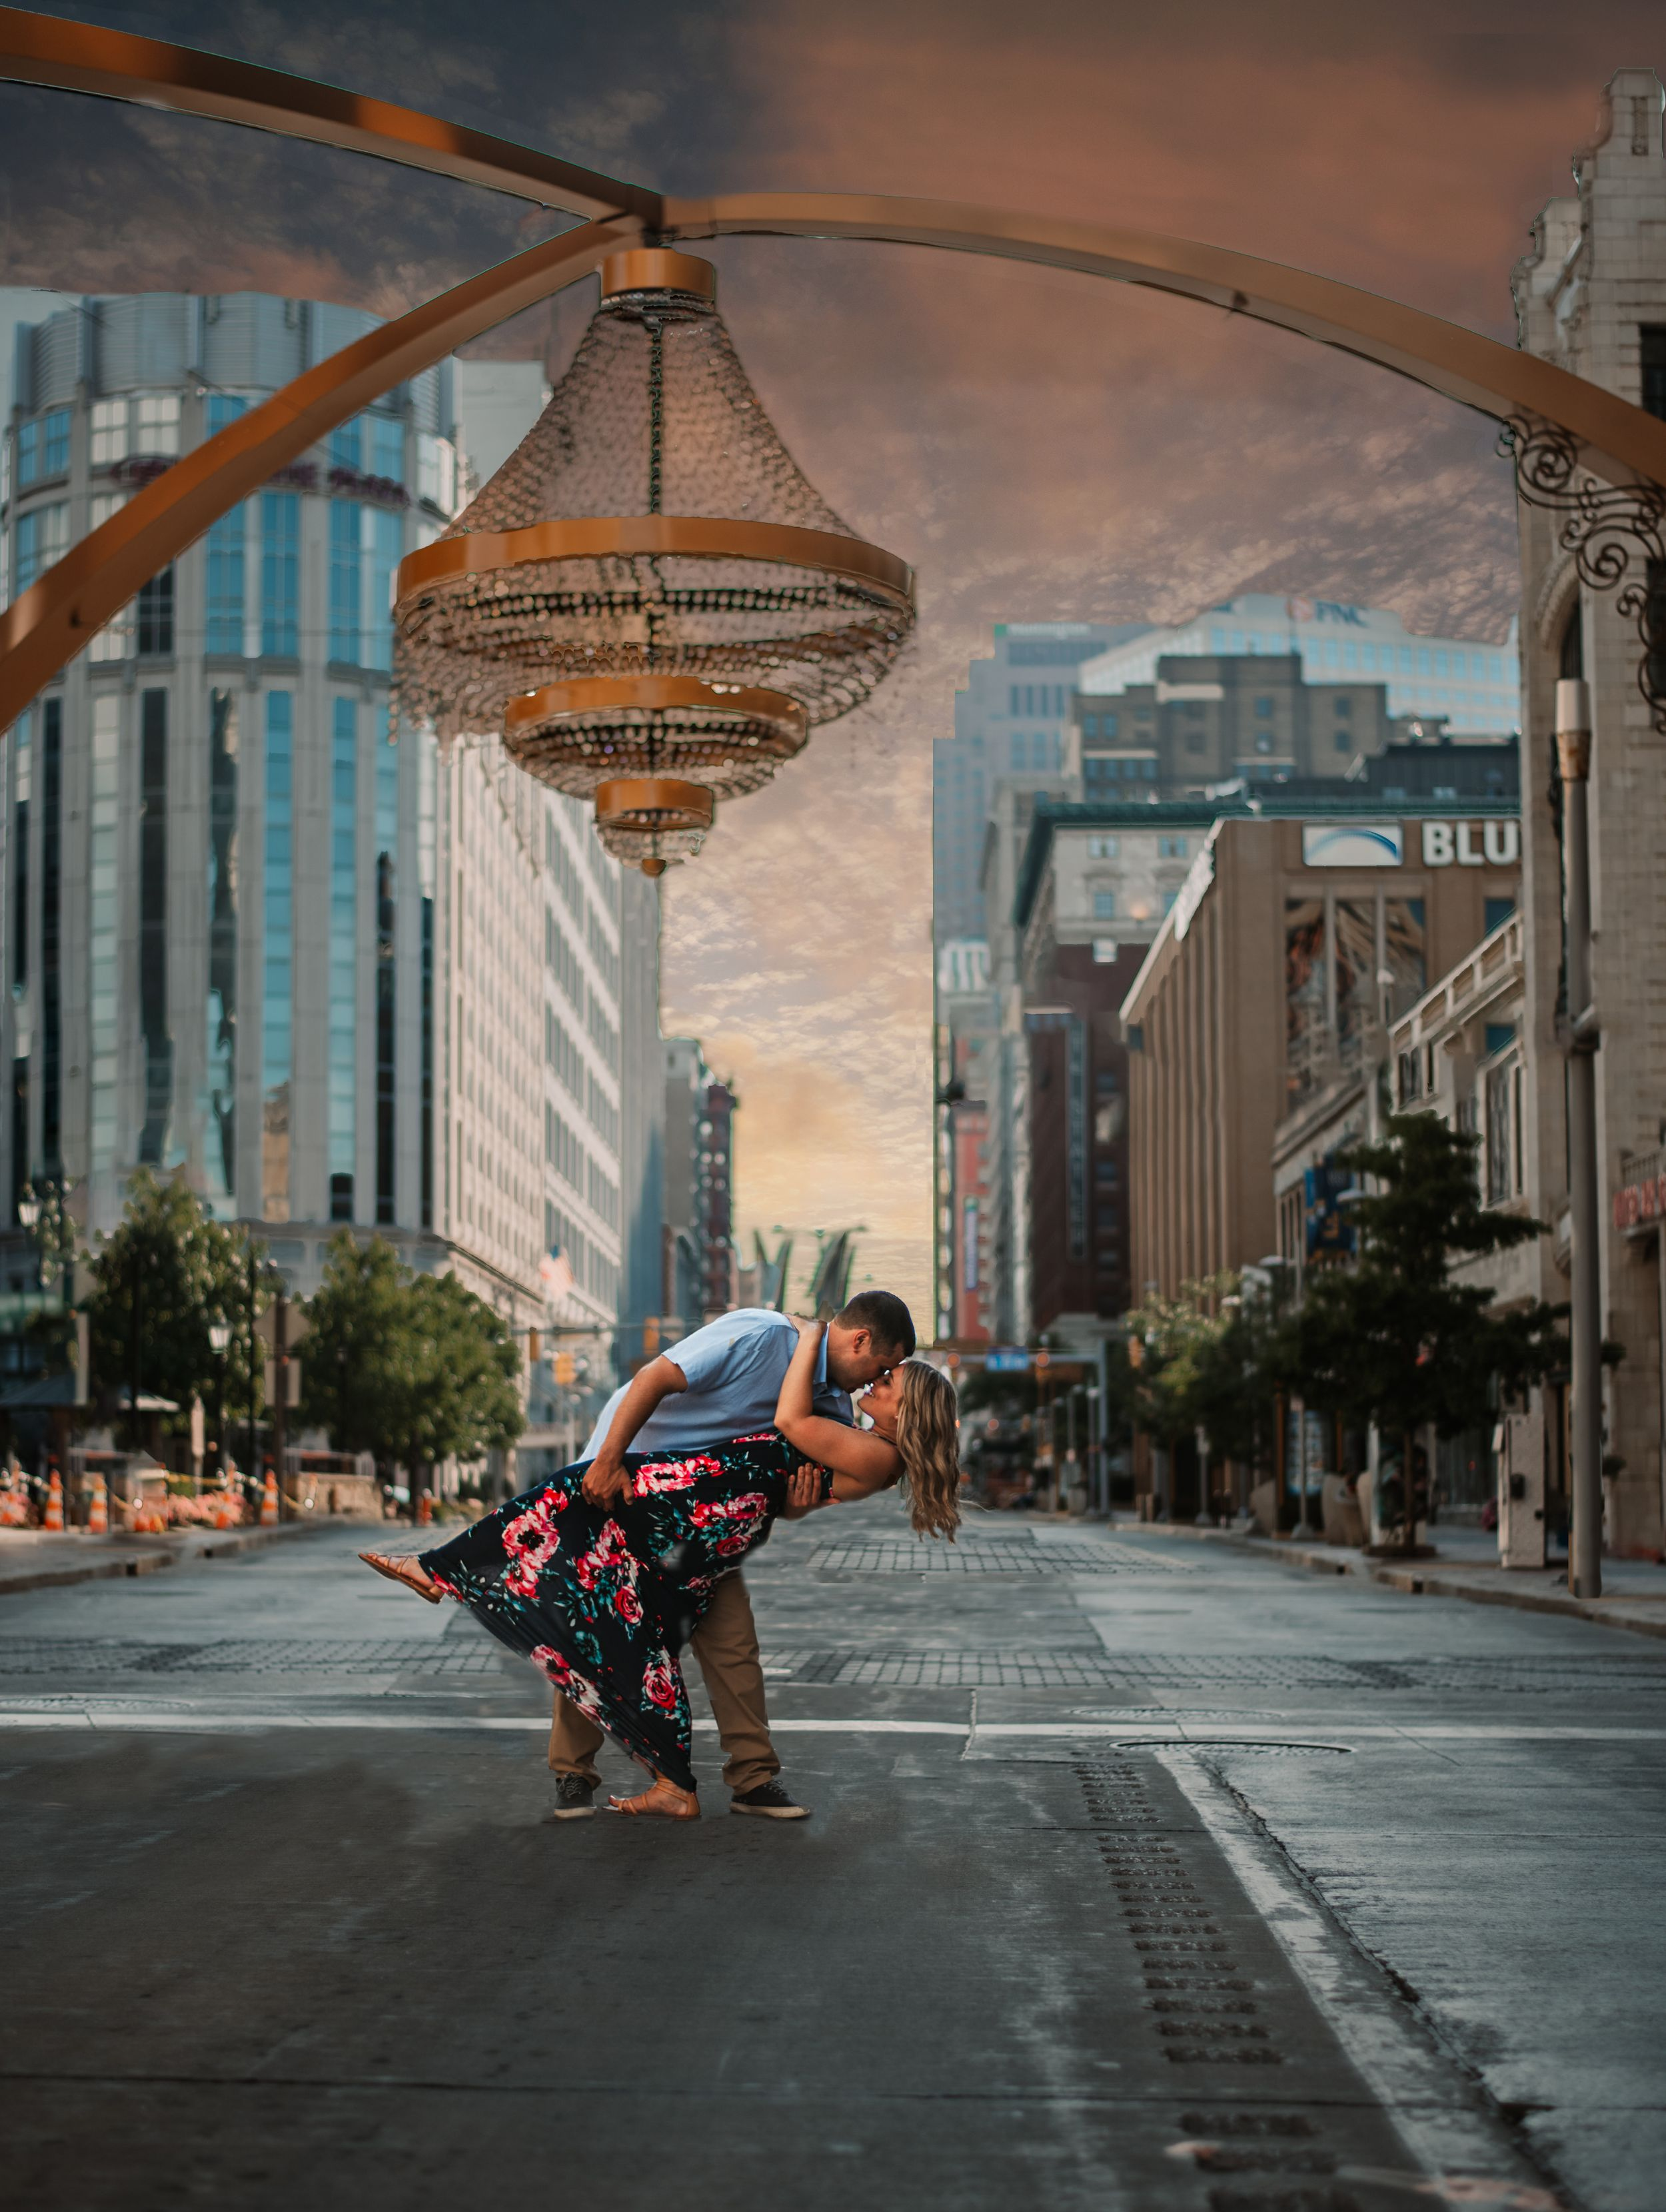 Jessica + Preston's Cleveland Engagement shoot at Playhouse Square. Shot in Cleveland, Ohio